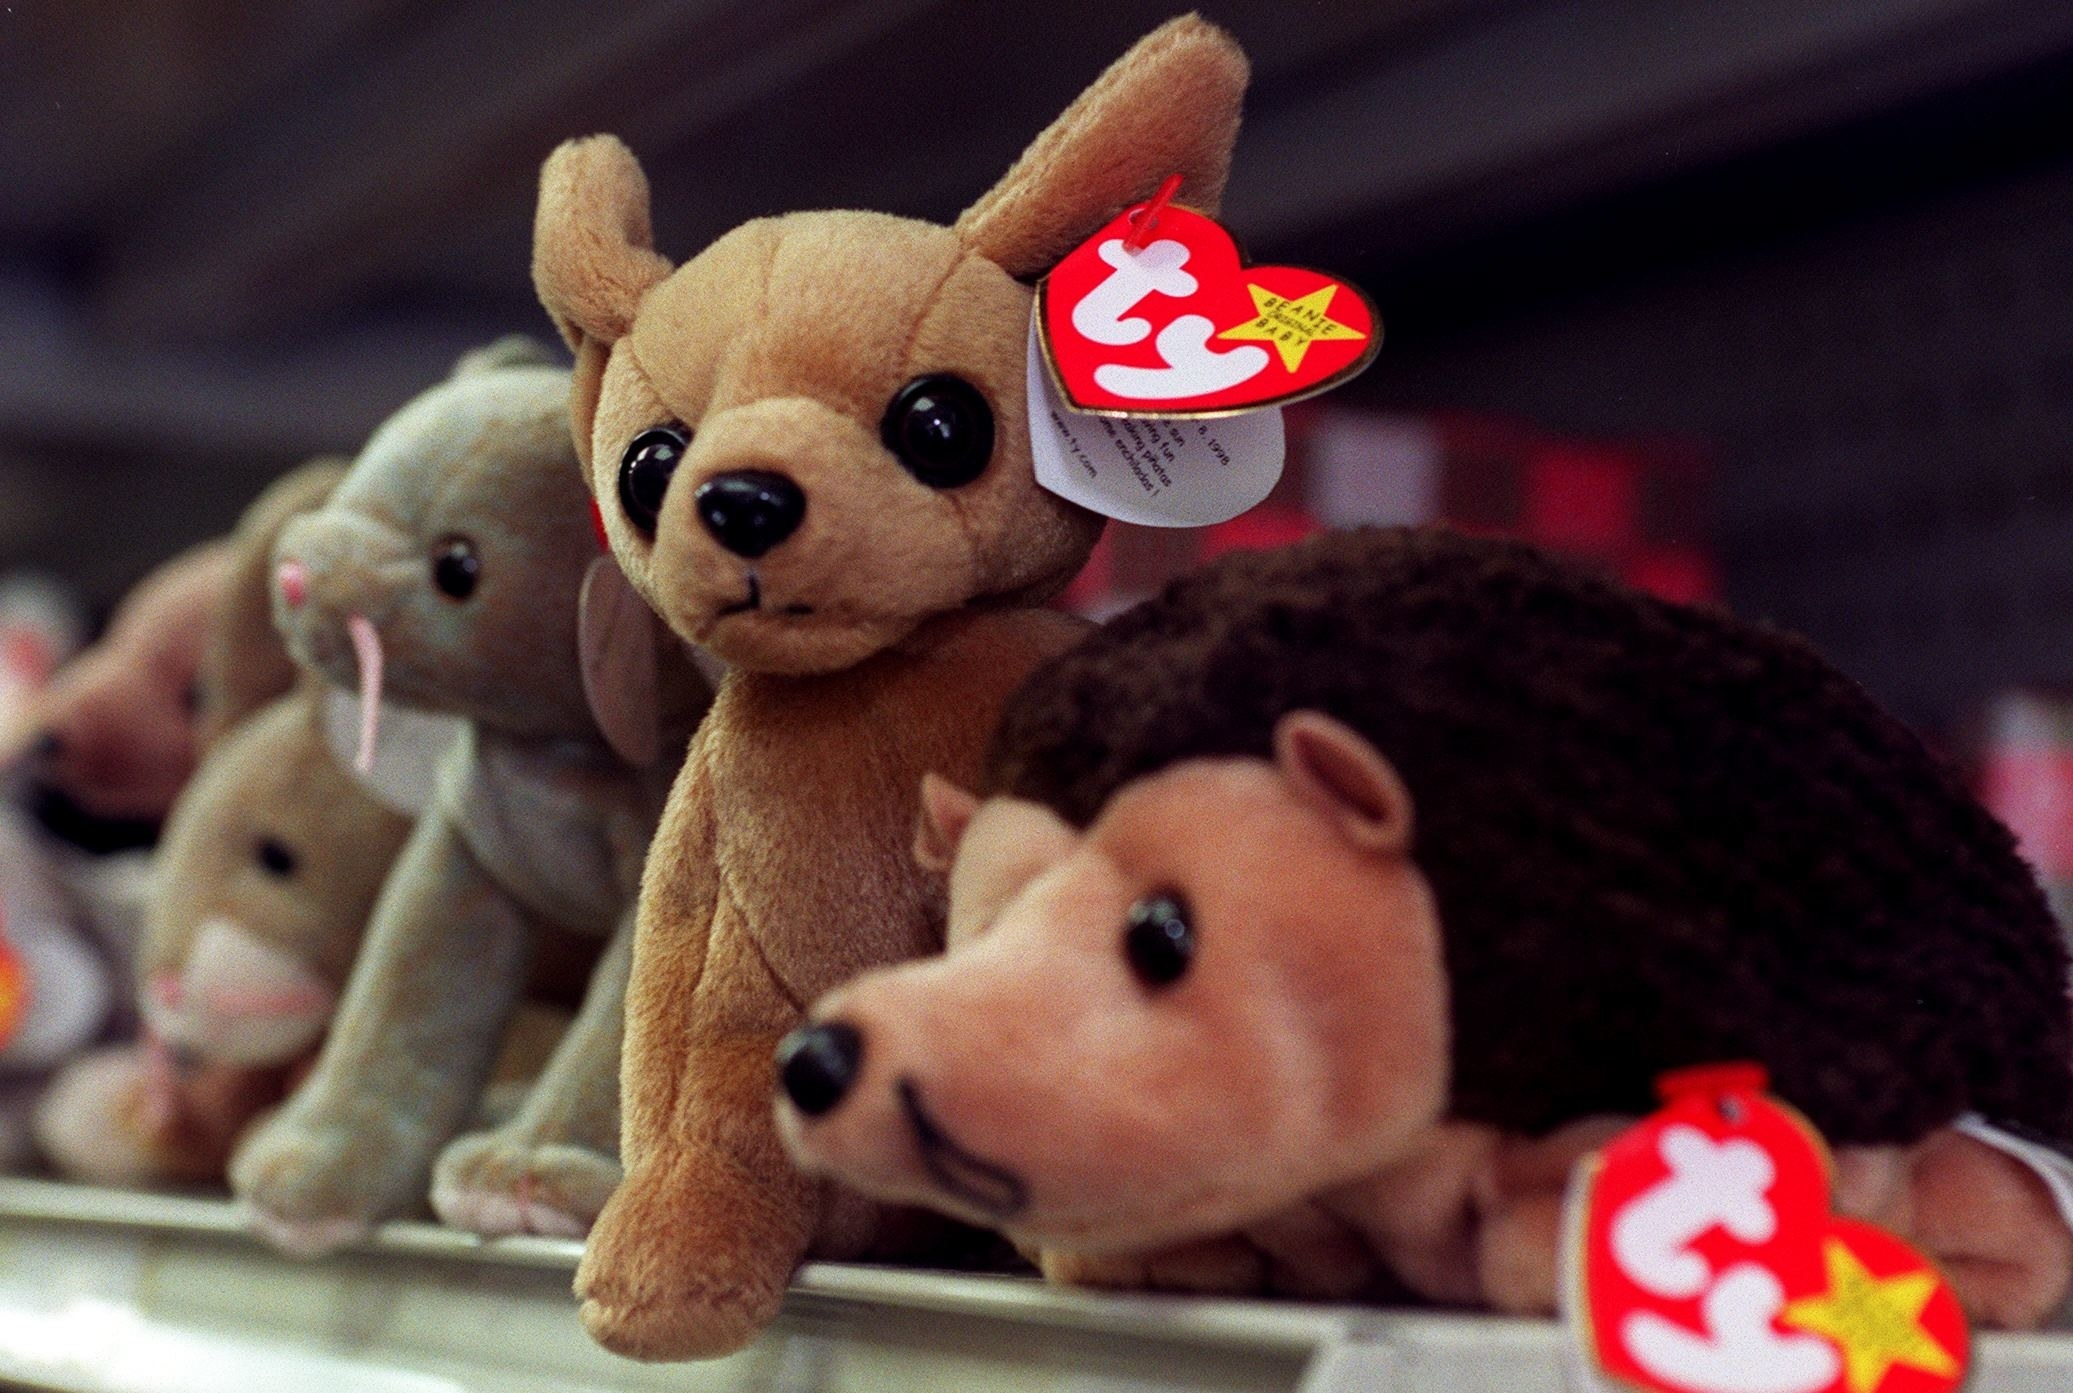 A collection of Beanie Babies on a store shelf